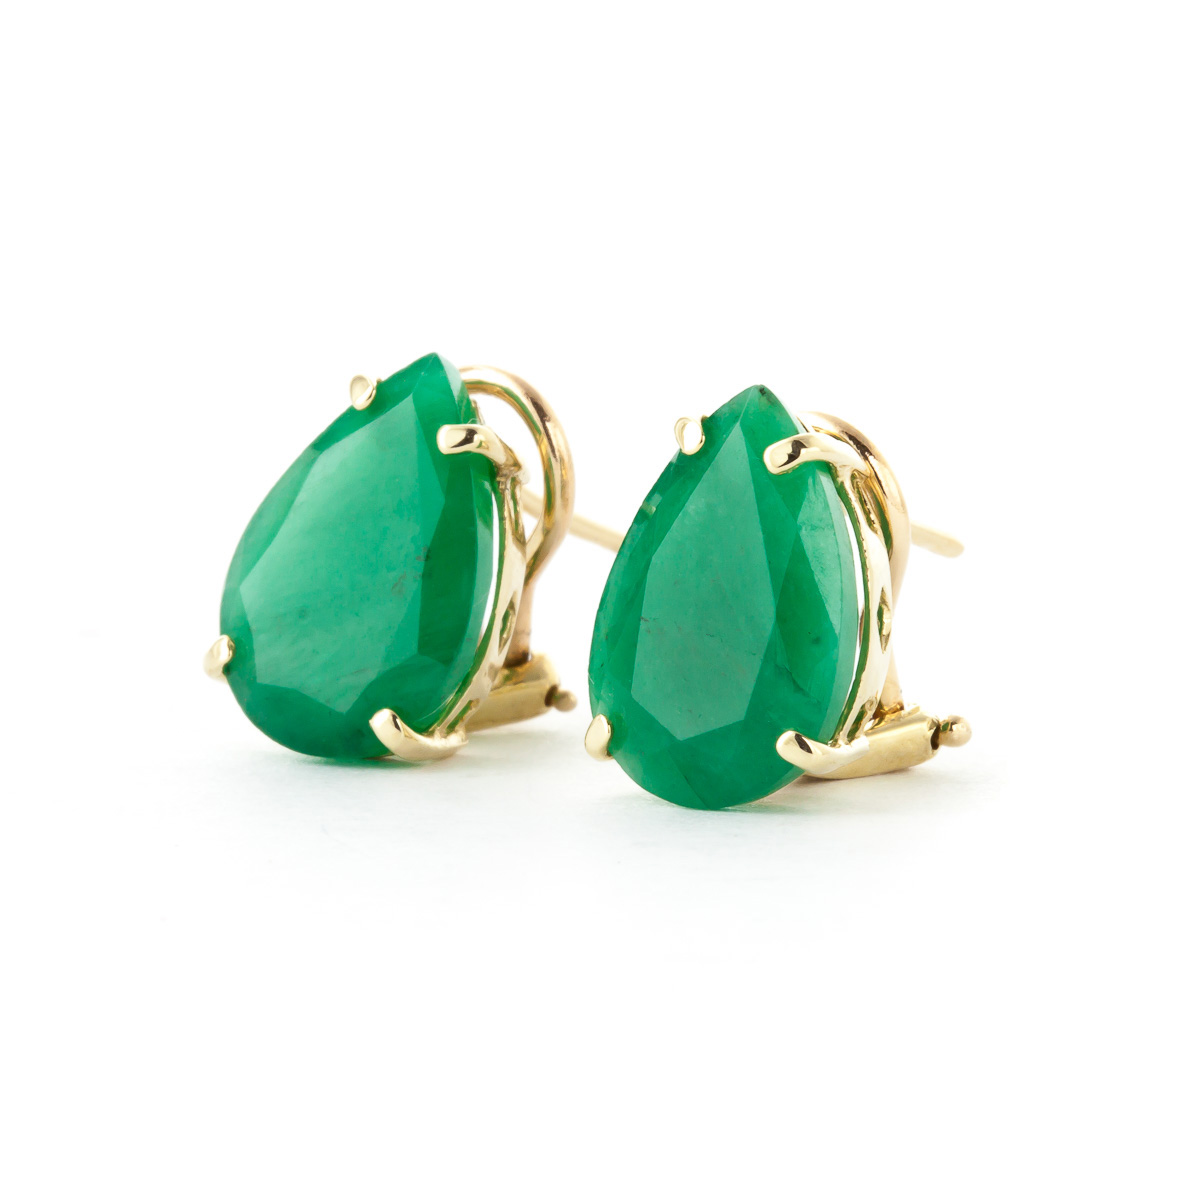 Emerald Droplet Stud Earrings 7 ctw in 9ct Gold